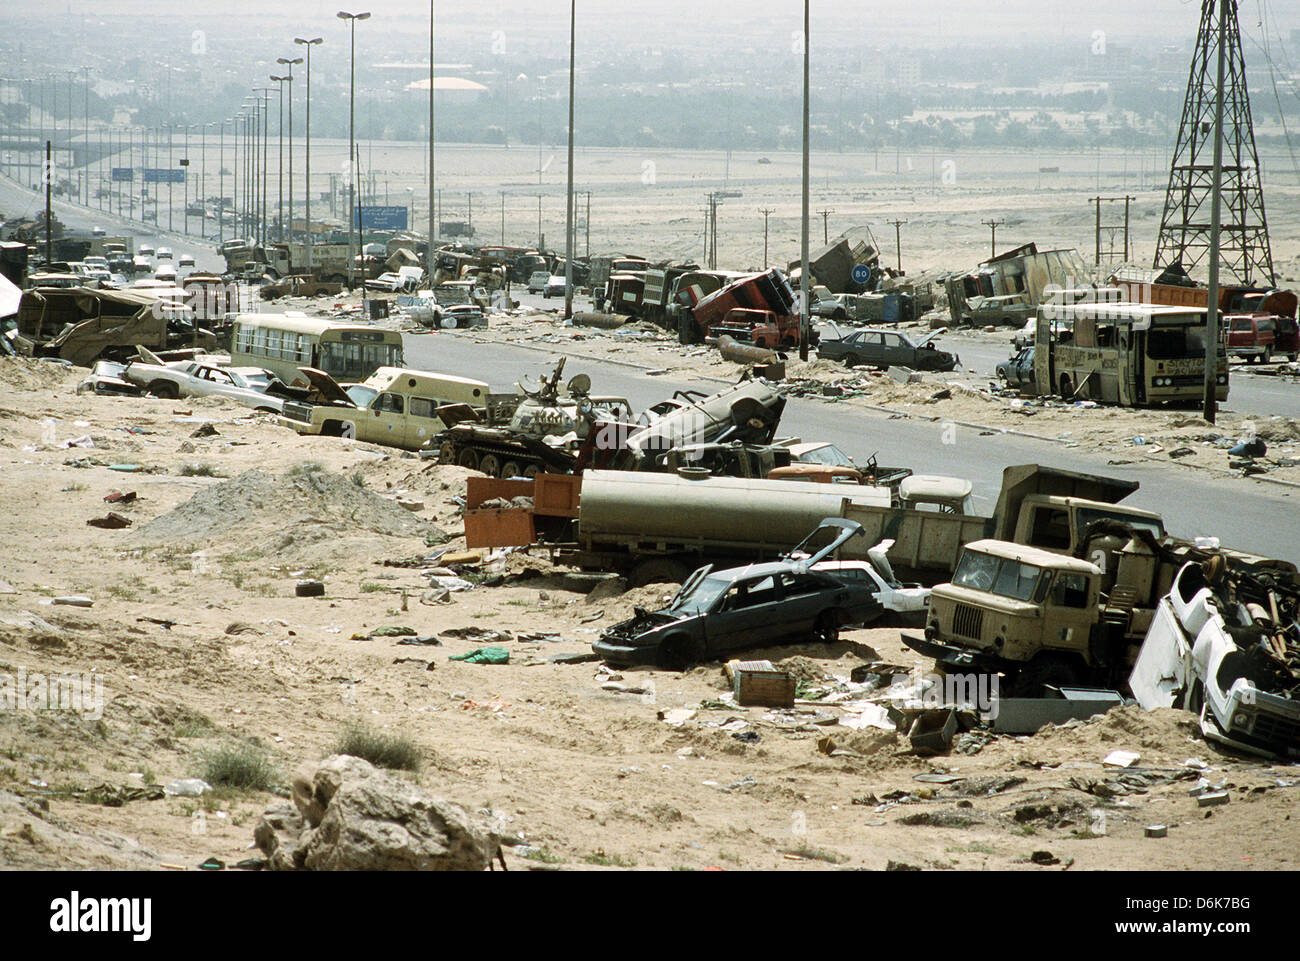 Iraqi Army armored vehicles destroyed while retreating line Highway 80 during the Gulf War April 8, 1991 in Mutla - Stock Image